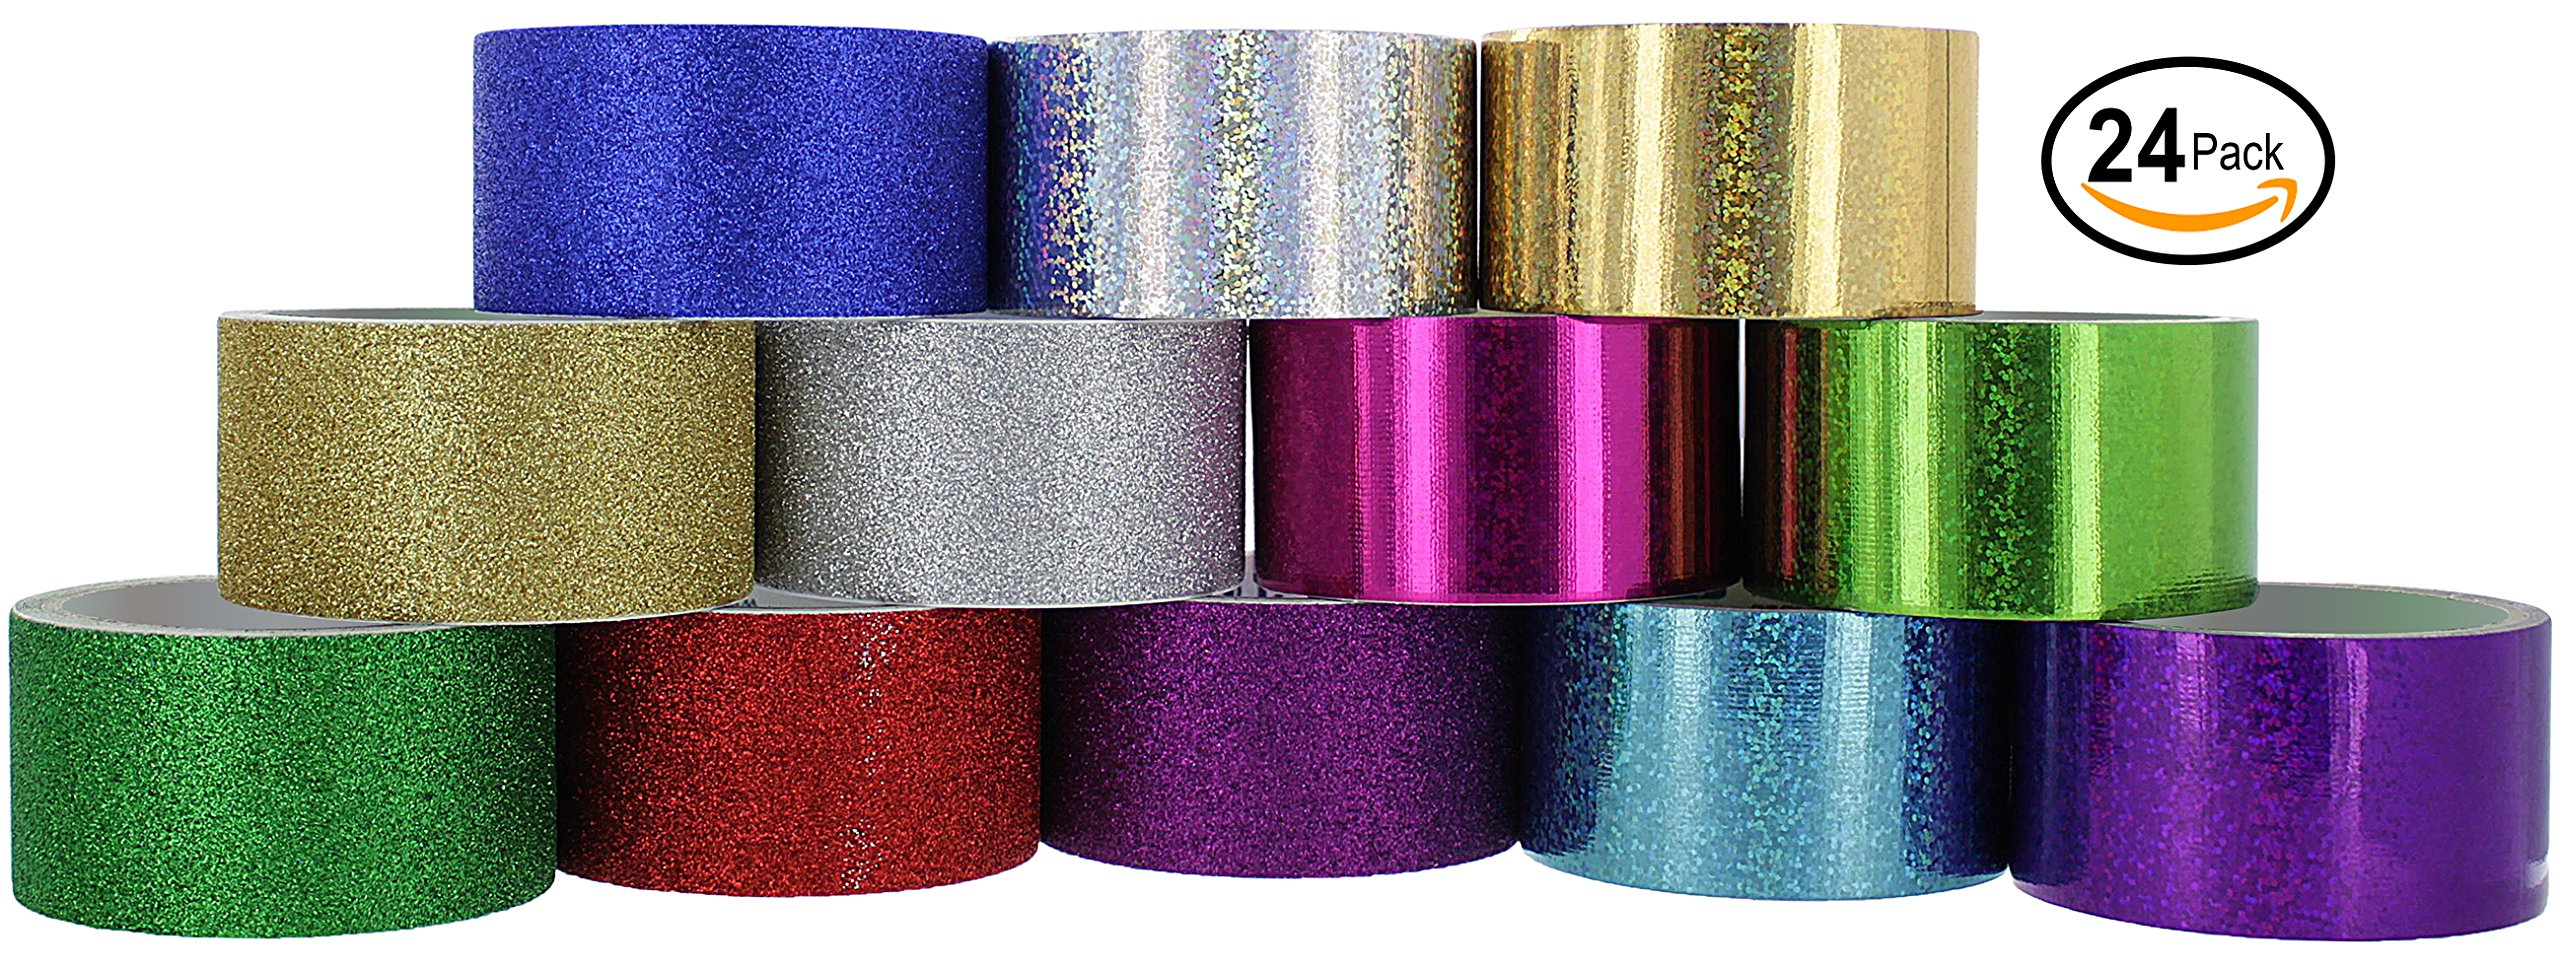 RamPro Glitter & Holographic Styles Heavy-Duty Duct Tape | Assorted Colors Pack of 24 Rolls.